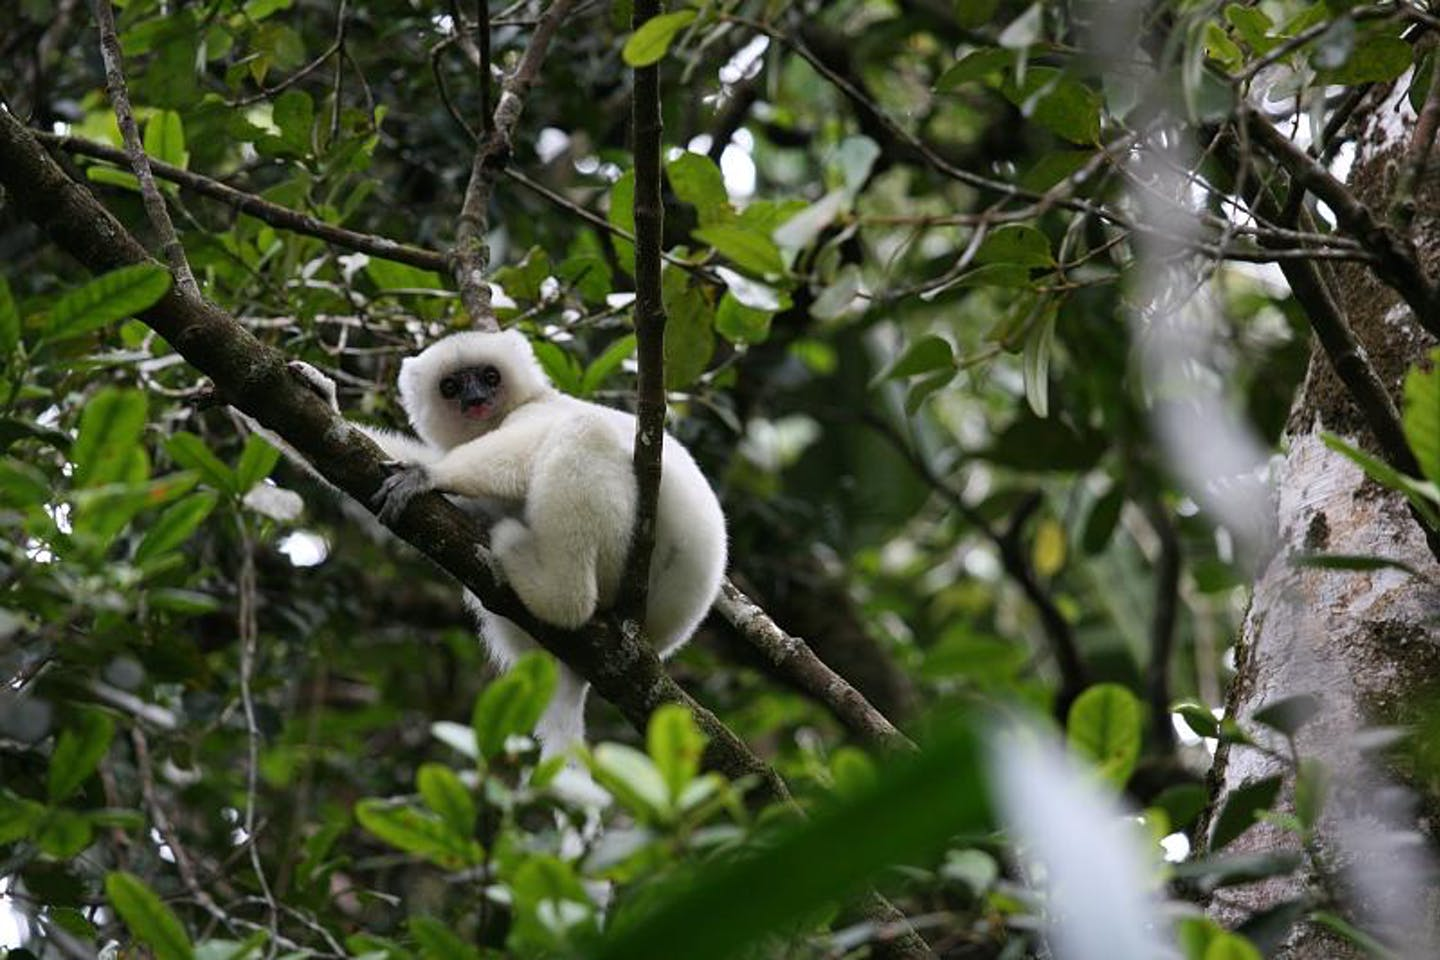 silky sifaka, found in Madagascar